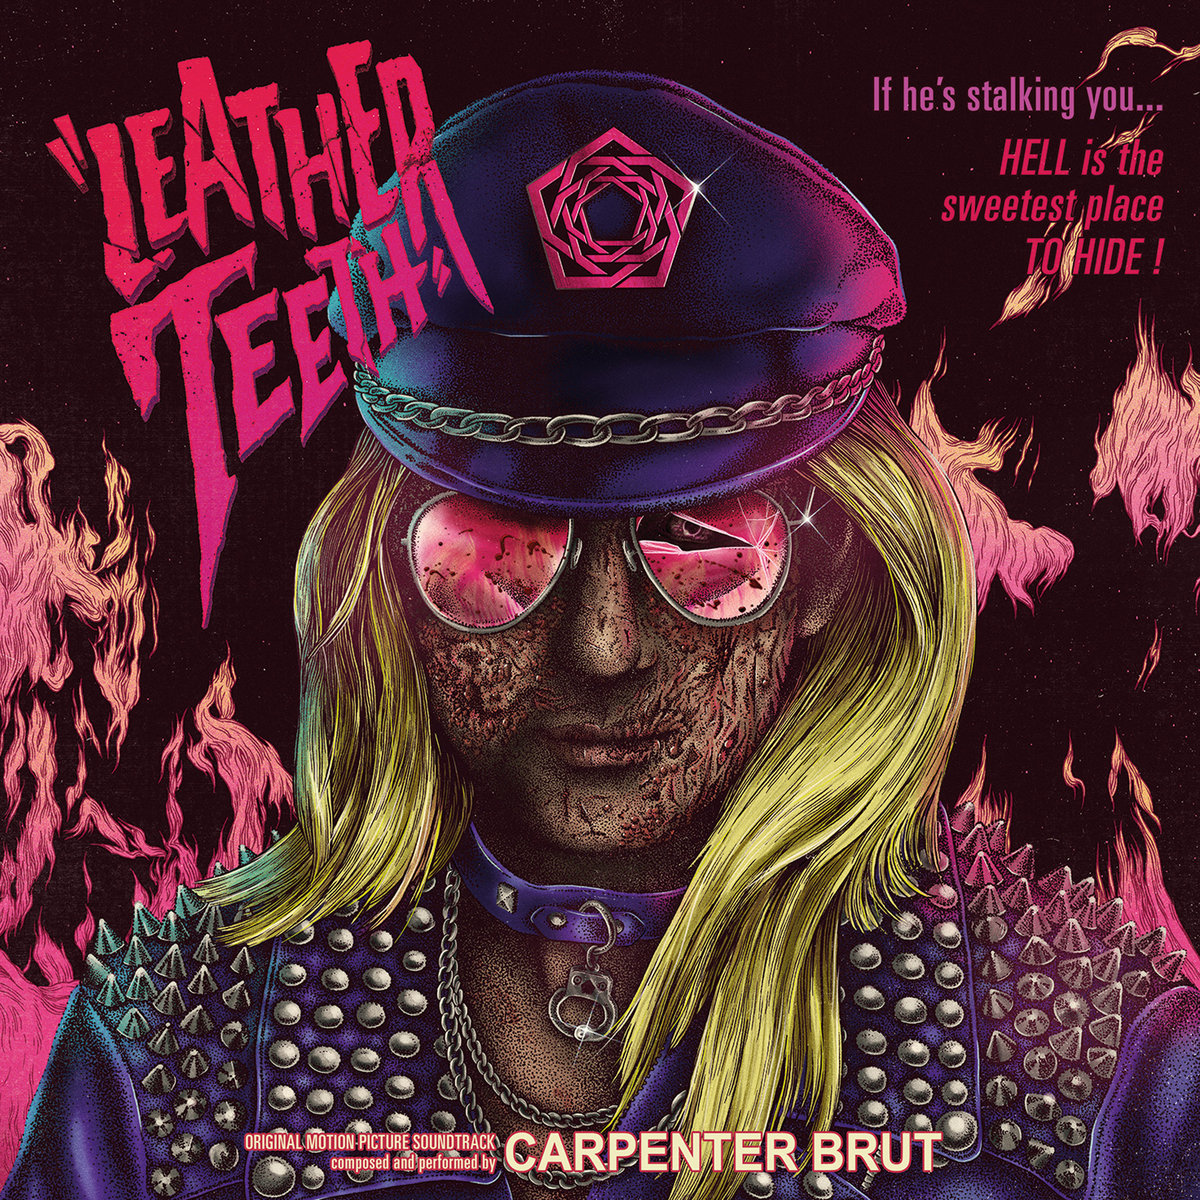 CARPENTER BRUT Leather Teeth – Vinyl LP (black) *Pre-order